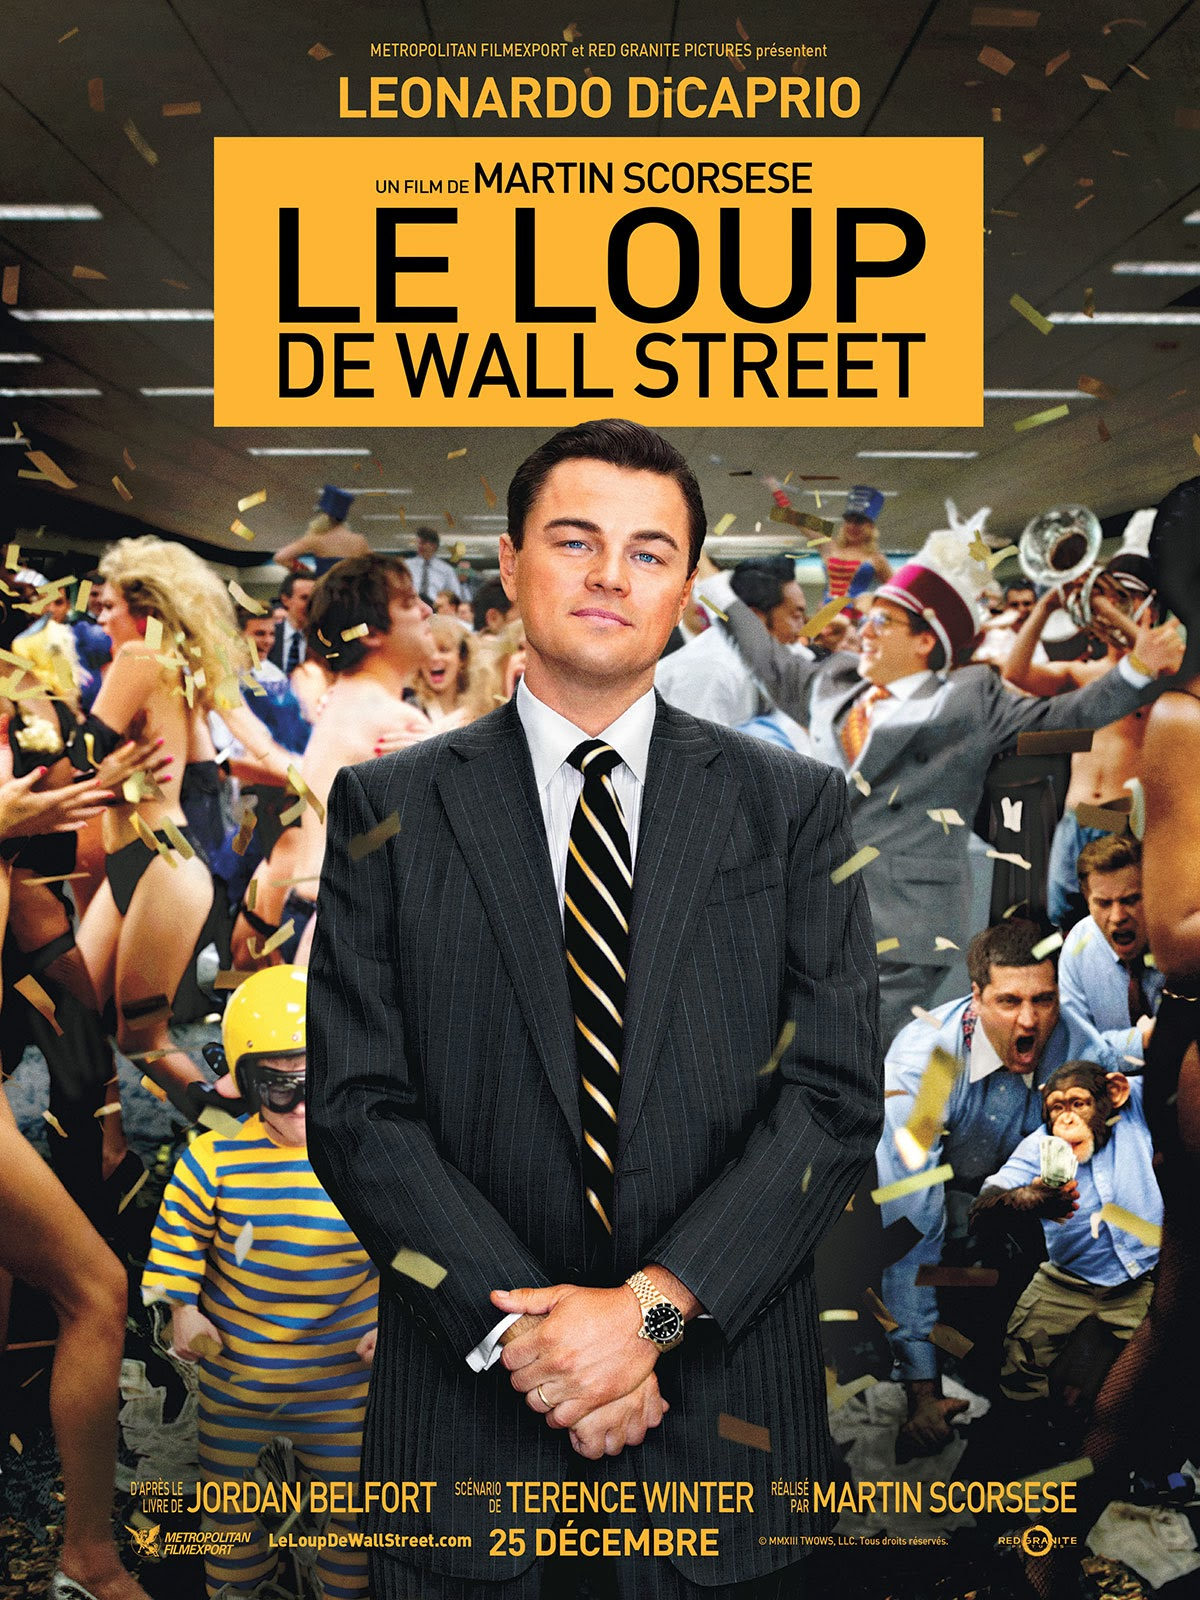 Regarder Le Loup de Wall Street en Streaming - Le Loup de Wall Street Film Streaming